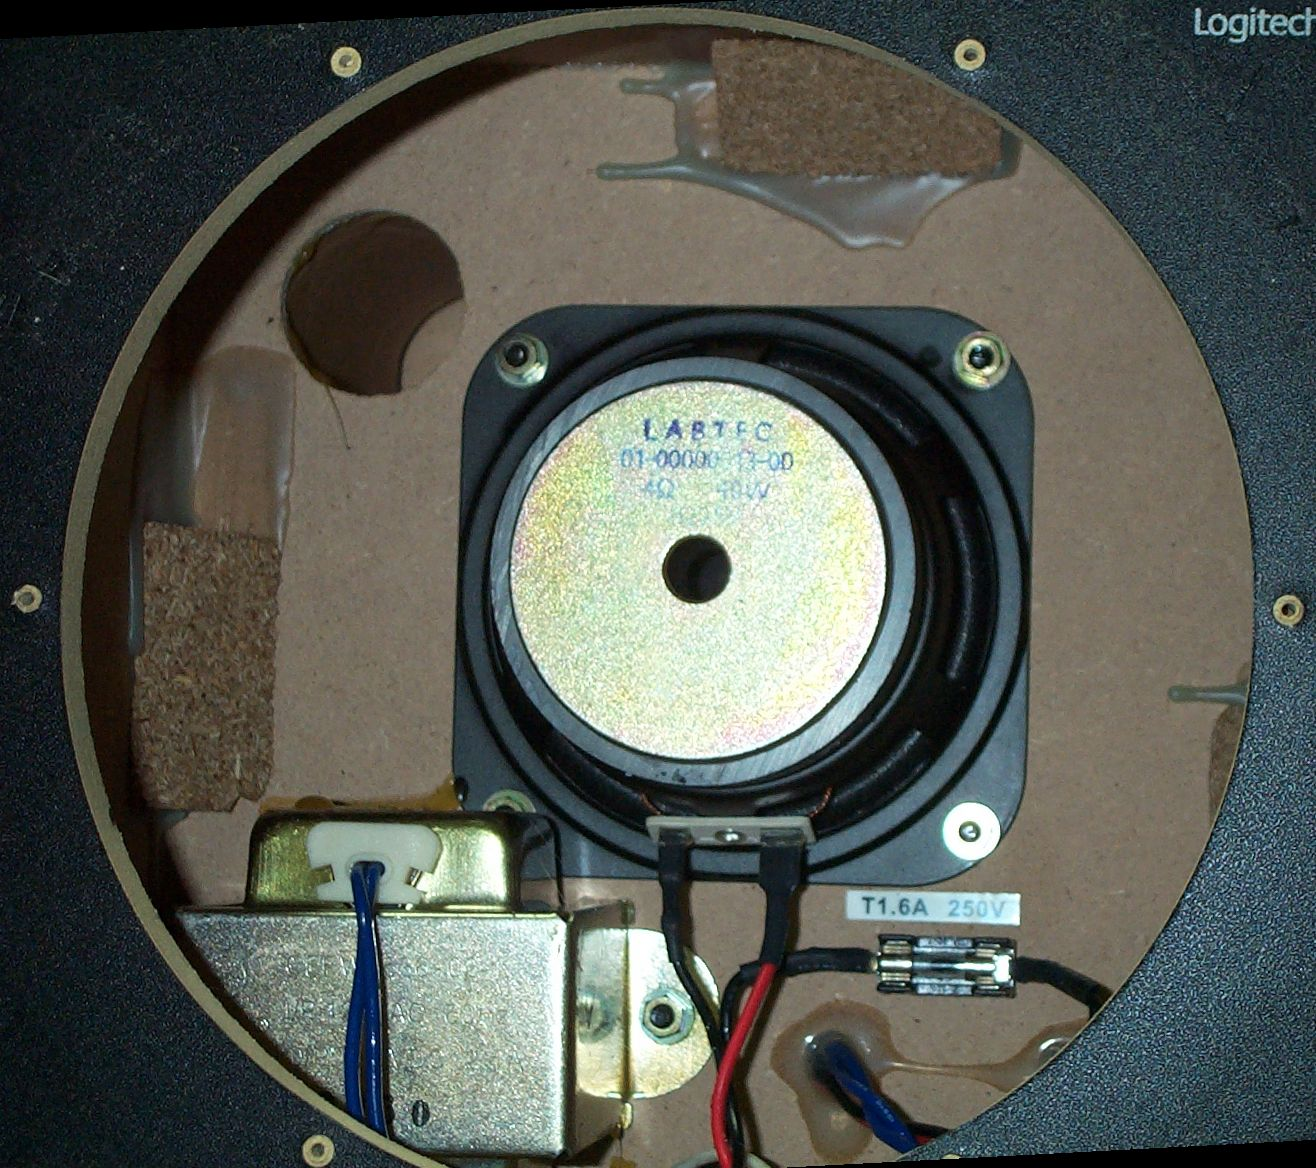 inside casing logitech z 640 subwoofer mod Sub and Amp Wiring Diagram at n-0.co